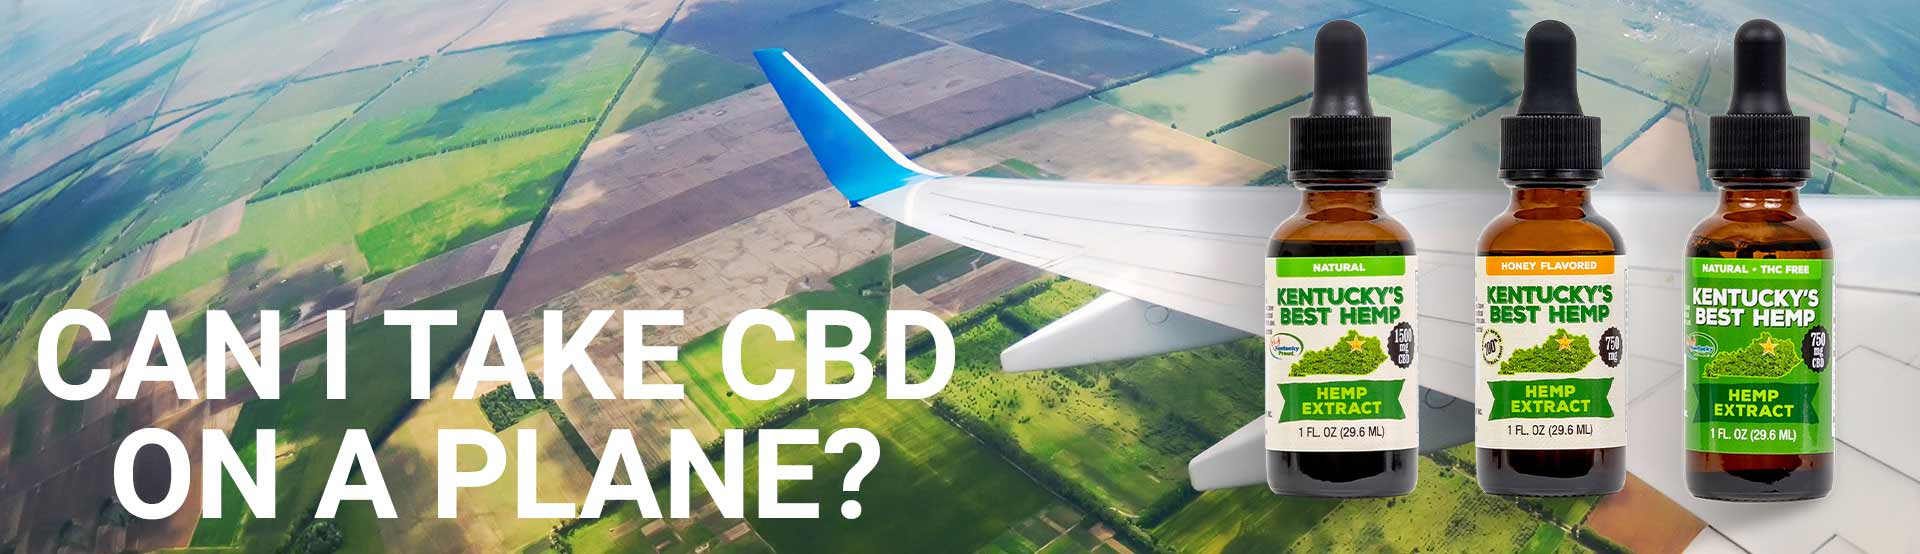 Can you Bring CBD on a plane? Hero Image